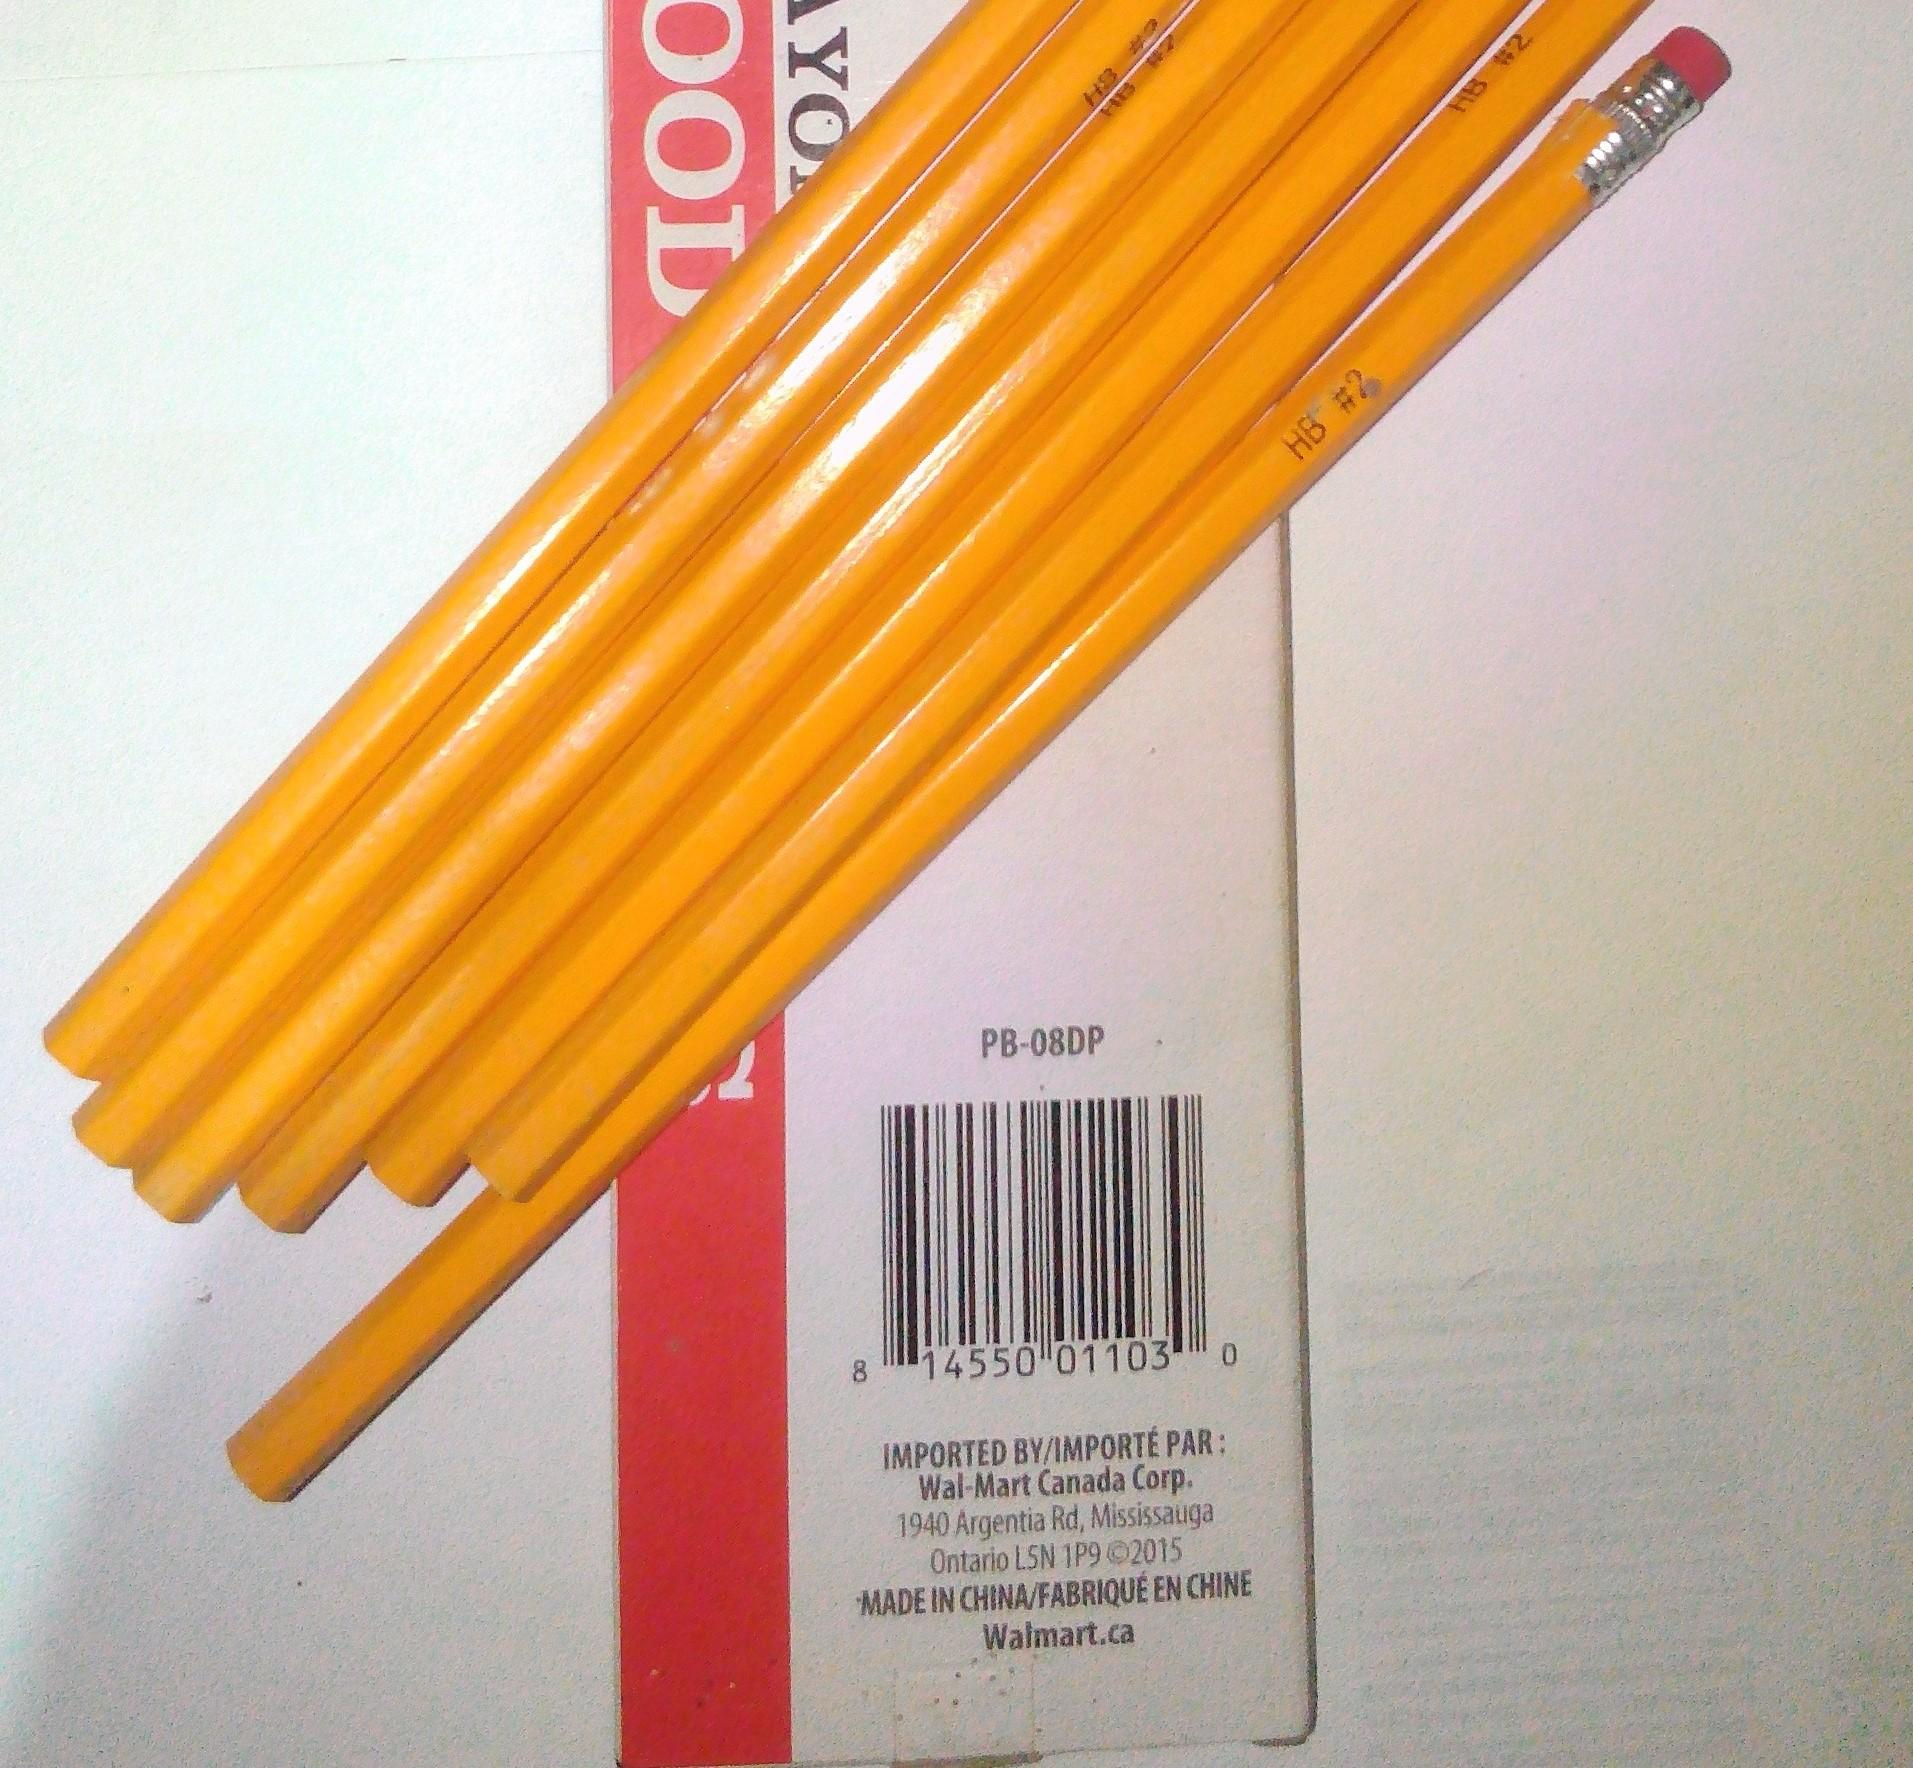 Pencils for sale - Writing Pencils prices, brands & review in ...